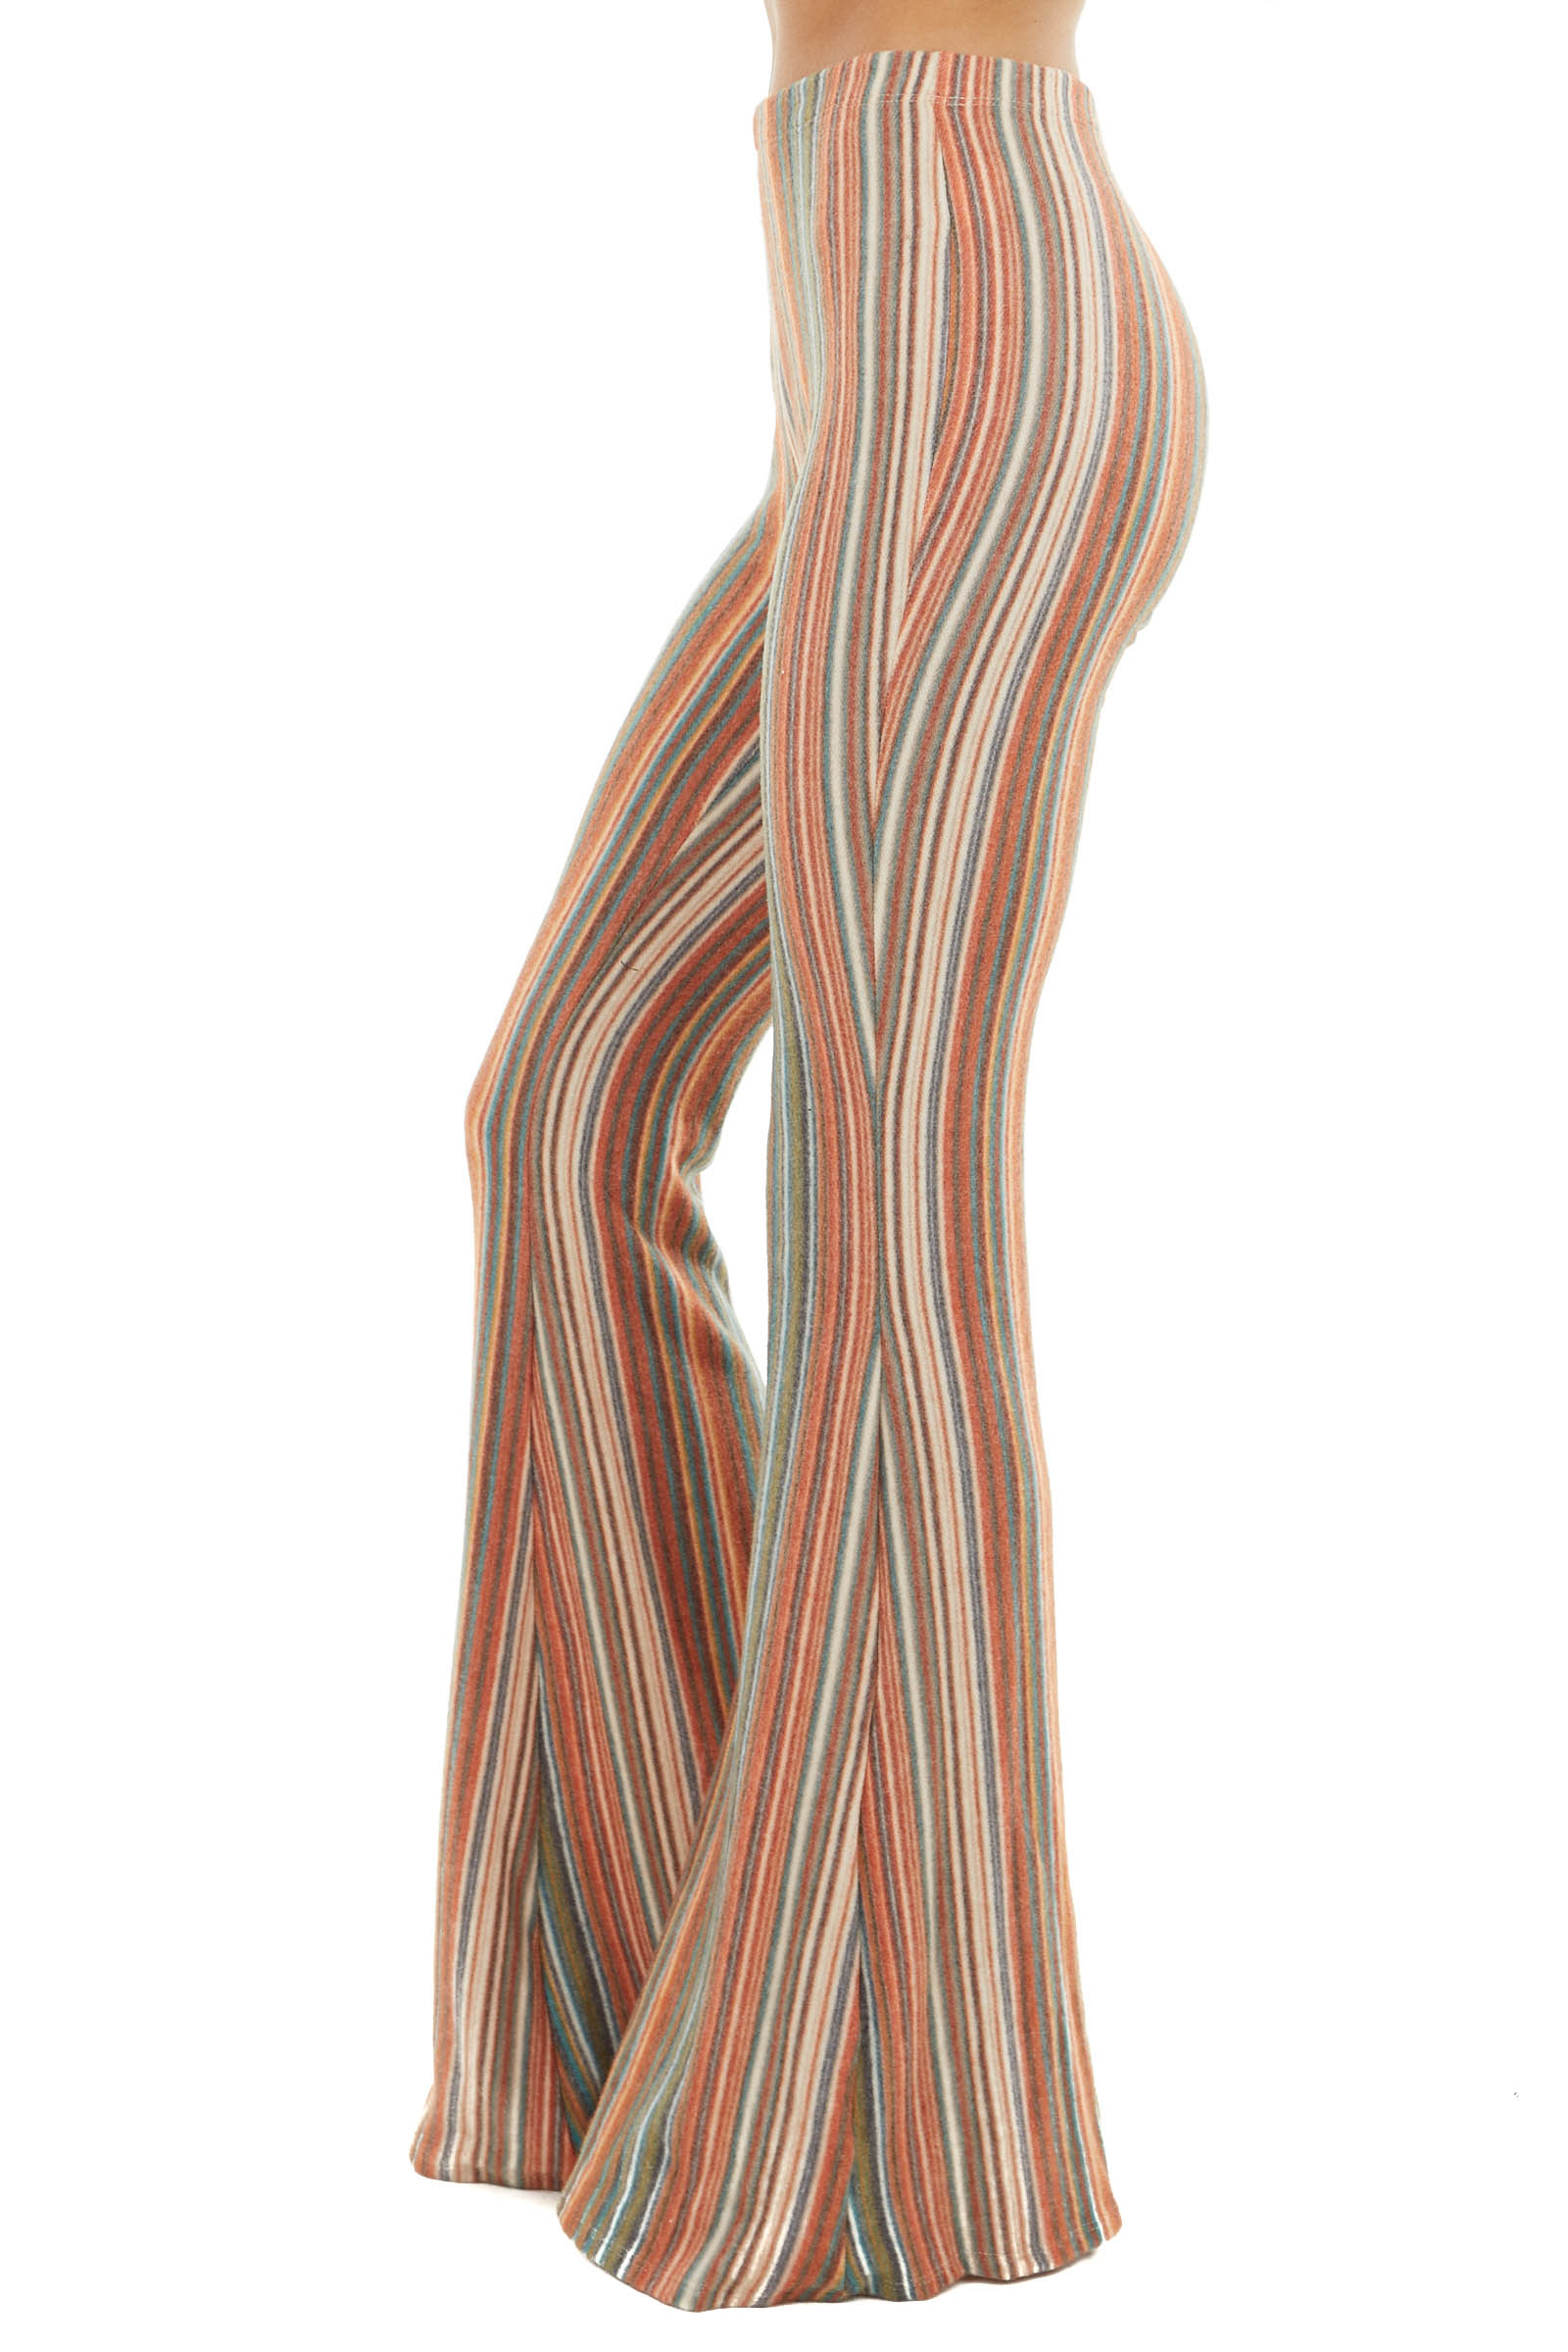 Multicolor Stripe Fuzzy Knit Flared Pants with Elastic Waist